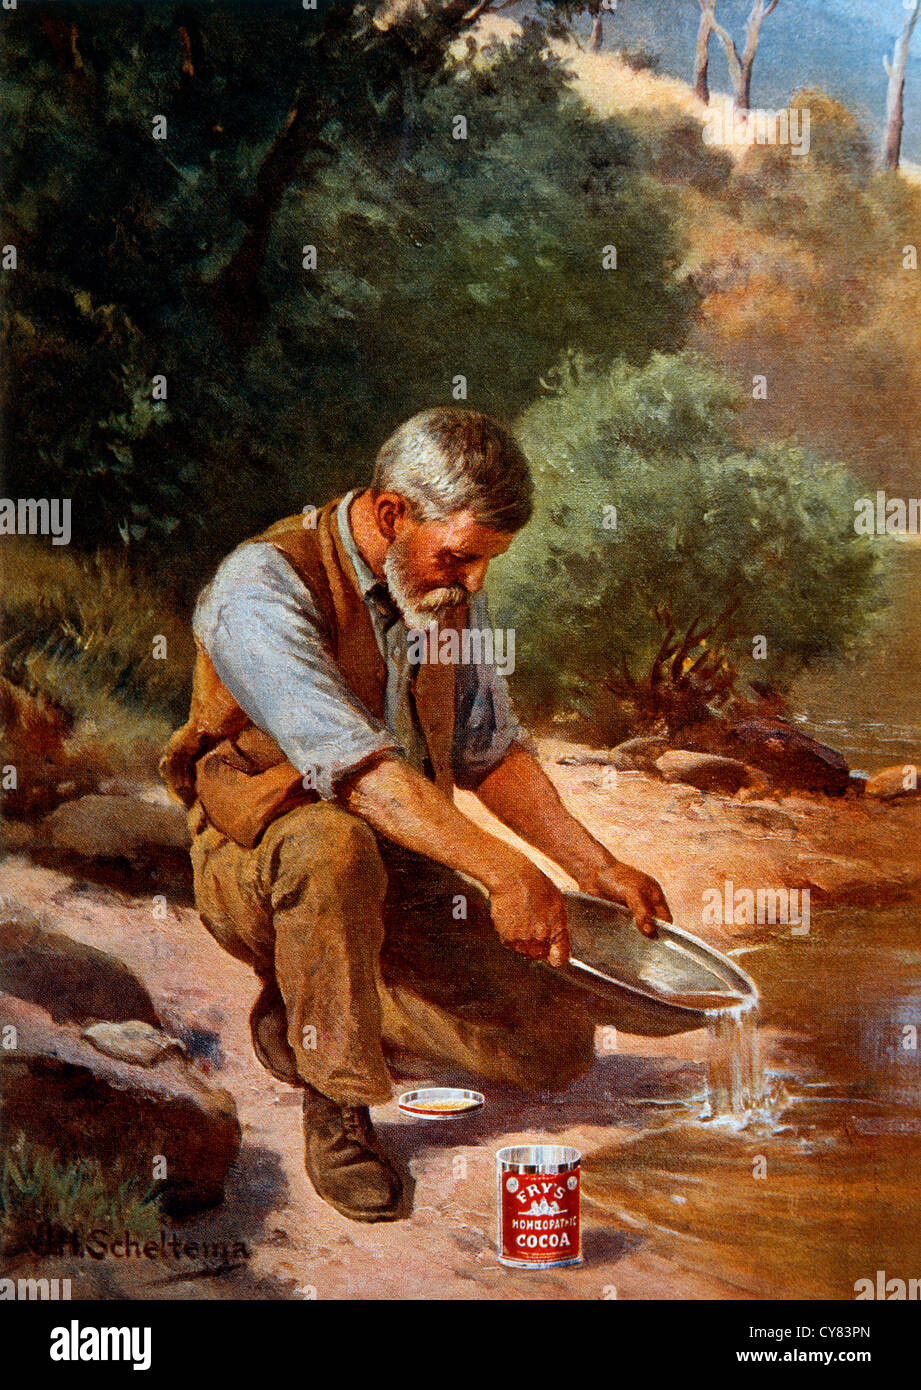 Gold Prospector, Painting by J.H. Scheltema, Circa 1909 - Stock Image